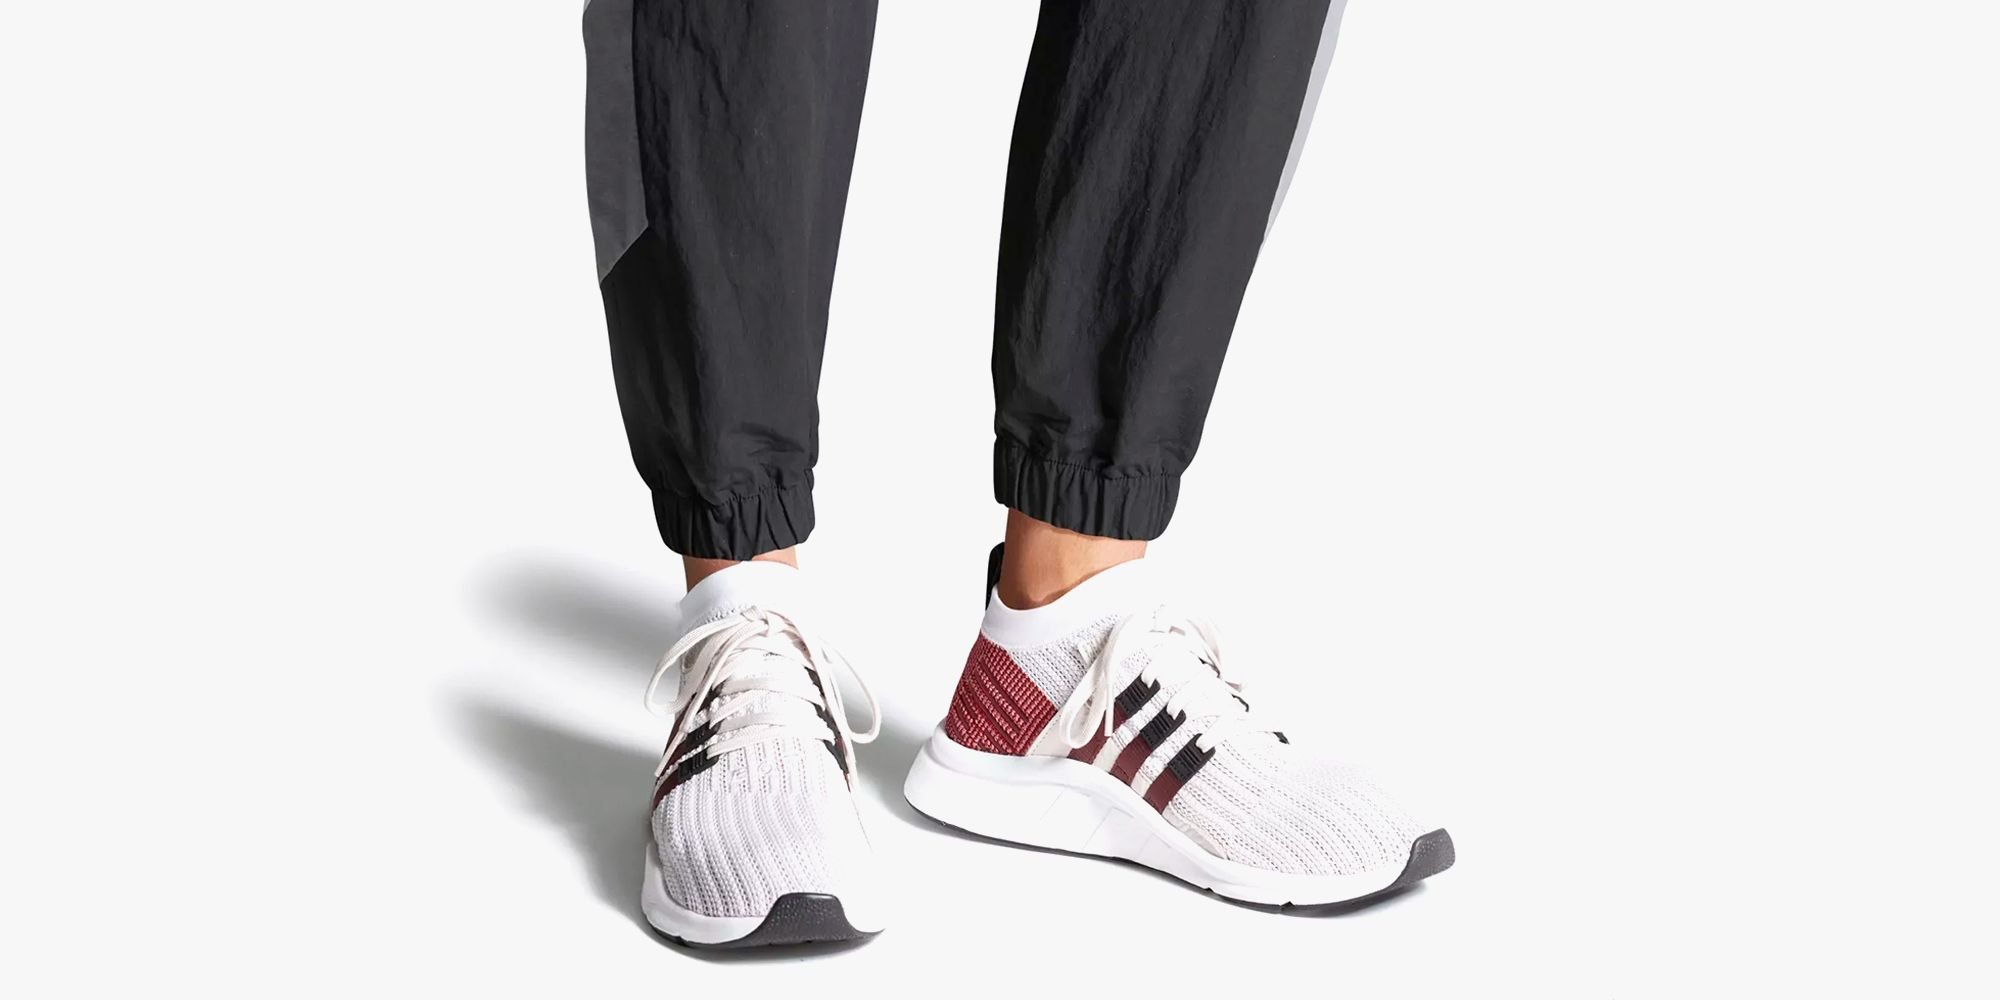 https://hips.hearstapps.com/hmg-prod.s3.amazonaws.com/images/new-adidas-shoes-august-2018-1534181225.jpg?crop=1.00xw:1.00xh;0,0&resize=480:*